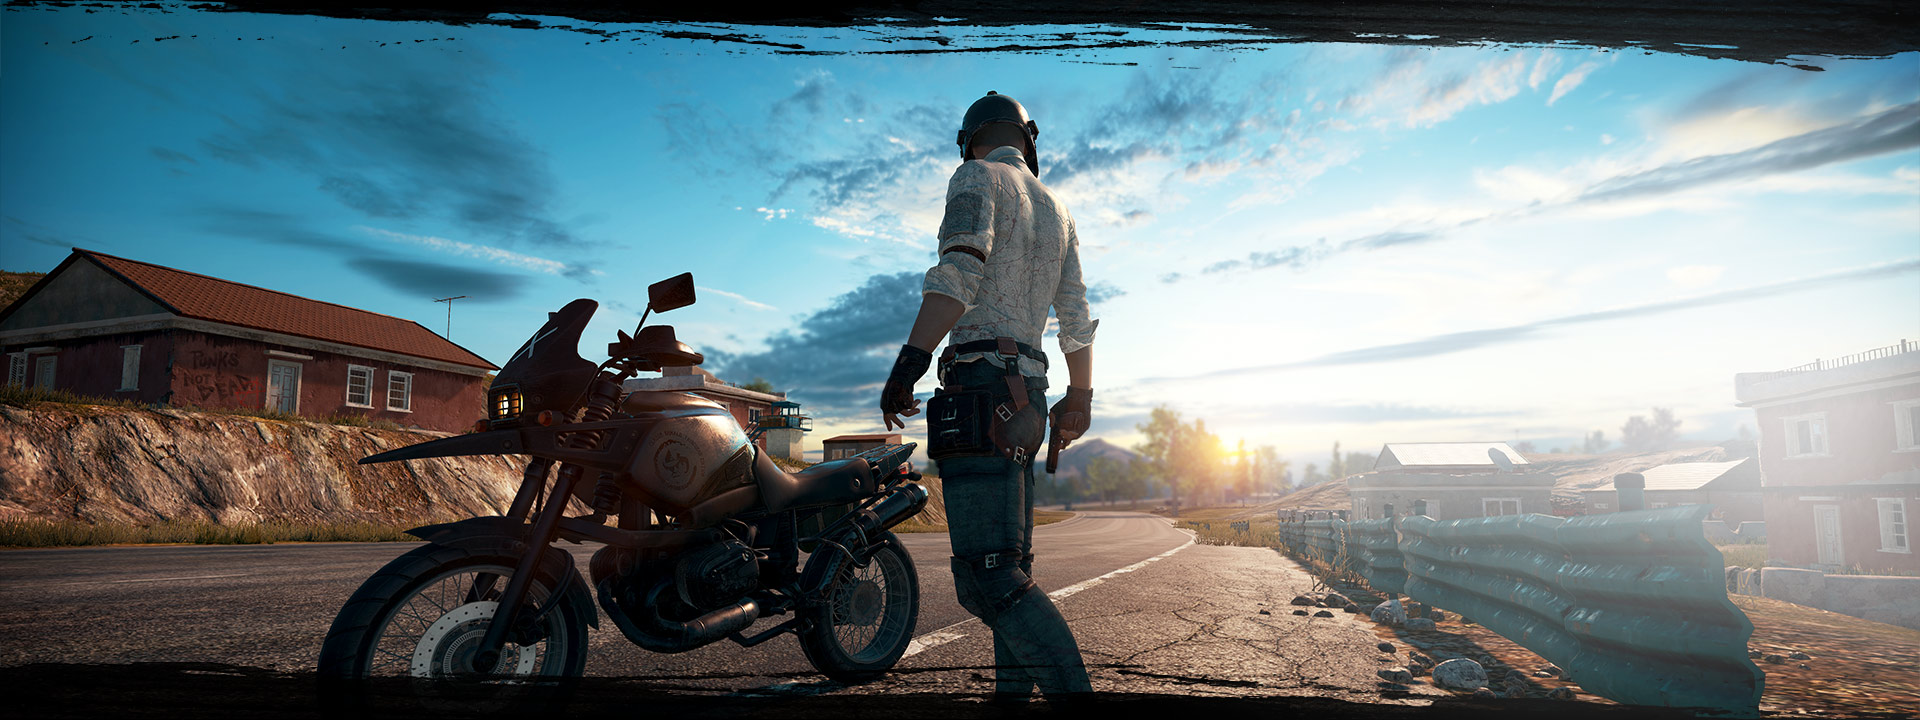 PlayerUnknowns character standing in front of motorcycle in the street with pistol